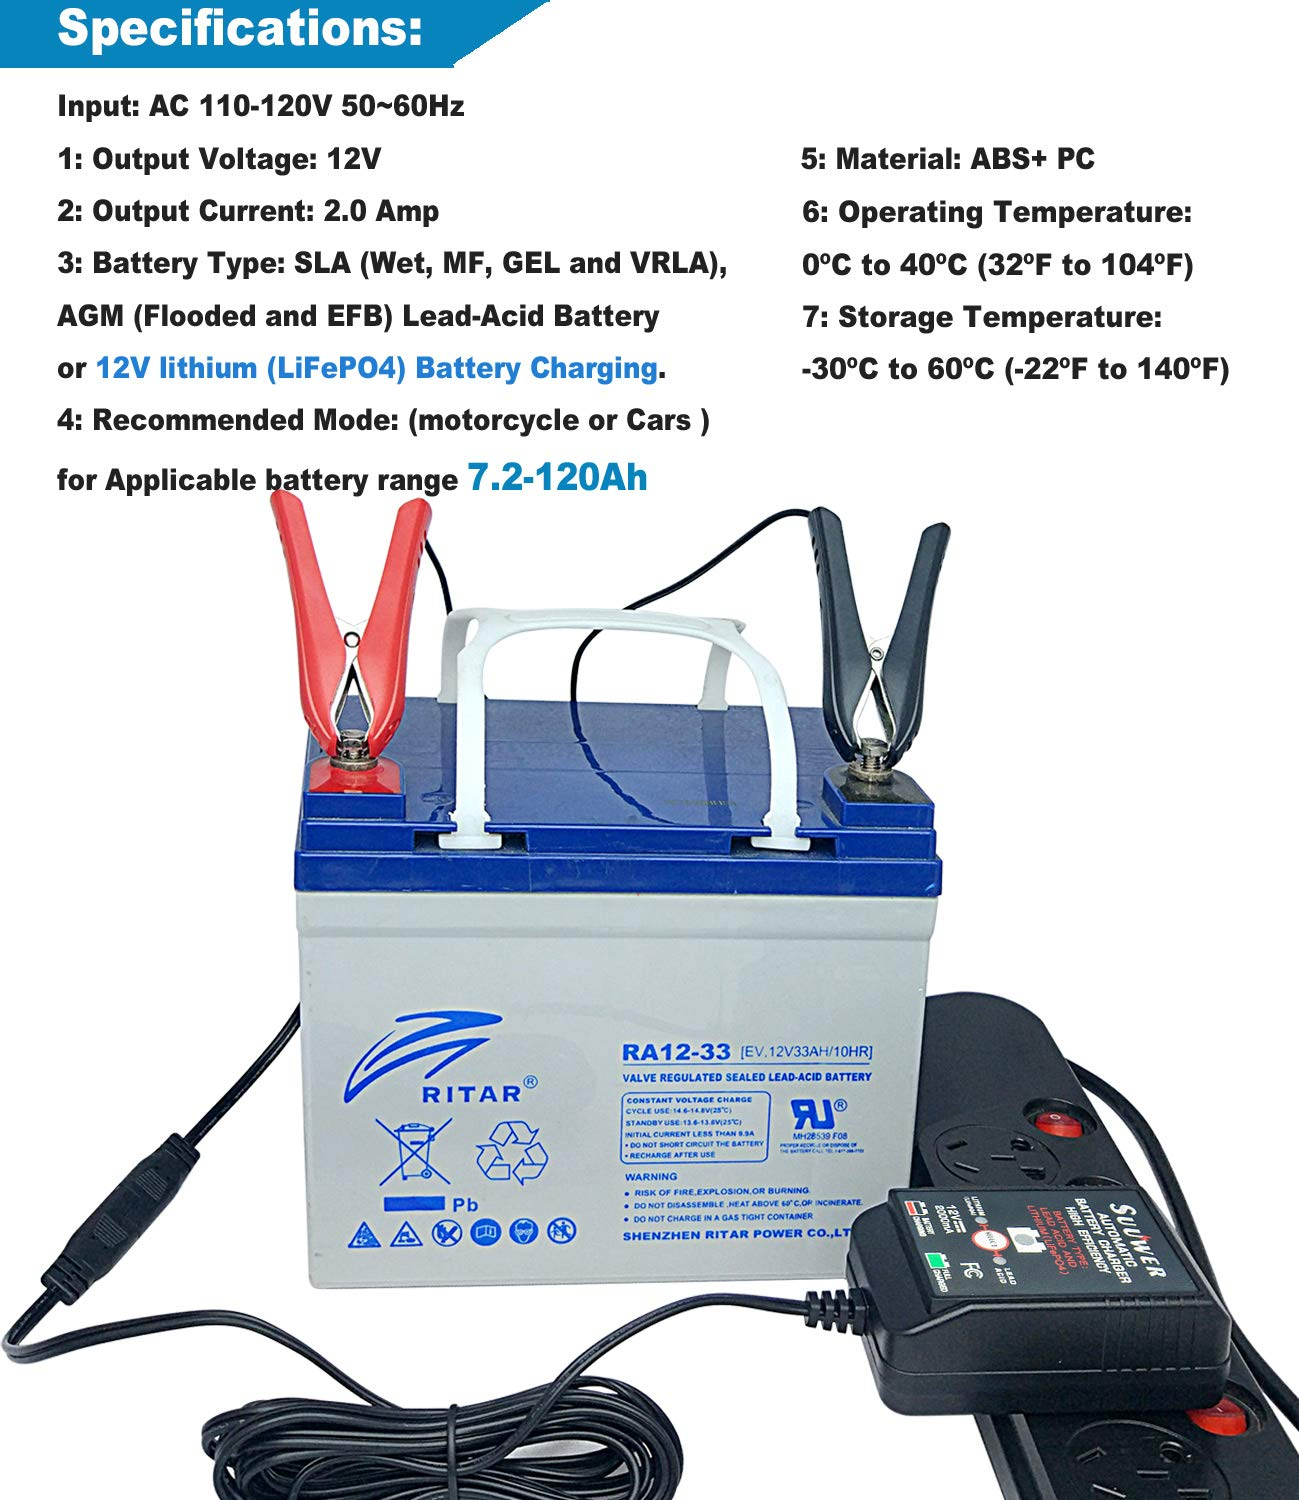 Suuwer 12v 2a Battery Charger Is A Smart Trickle Sealed Lead Acid Circuit Maintain Selectable Sla Agm Gel Cell Igel Ltv Lithium Lifepo4